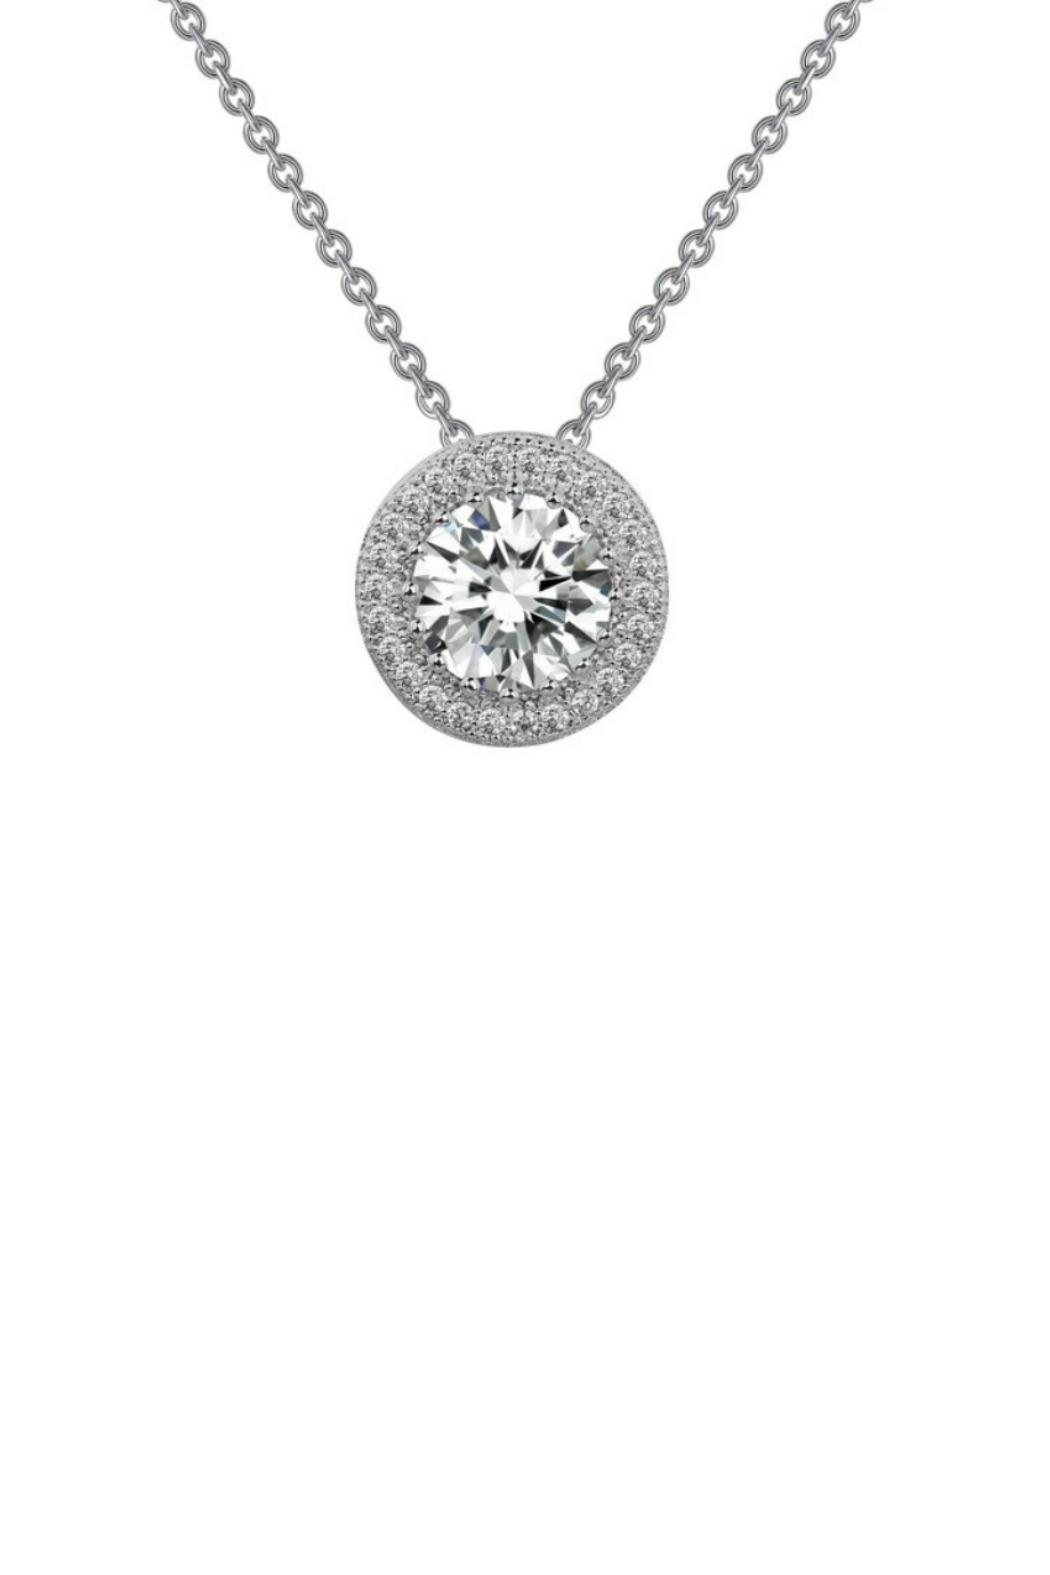 double veneer diamond simulated diamonds round necklace solitaire chain solid sided collections stationary pendant gold